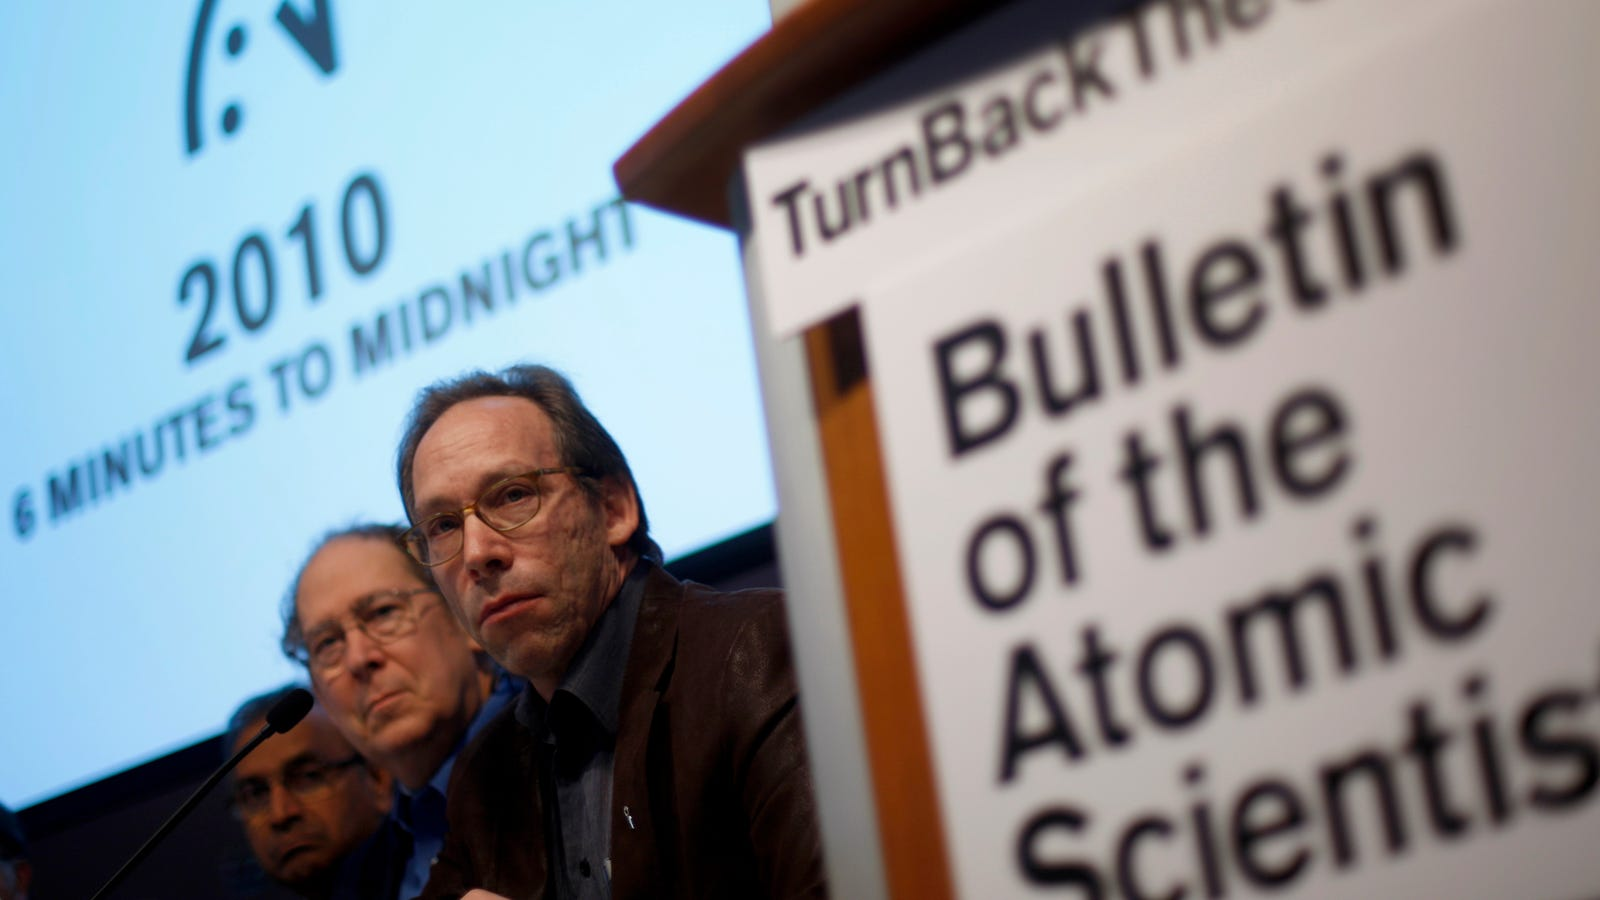 Science Organizations Cancel Lawrence Krauss Events After Sexual Harassment Allegations